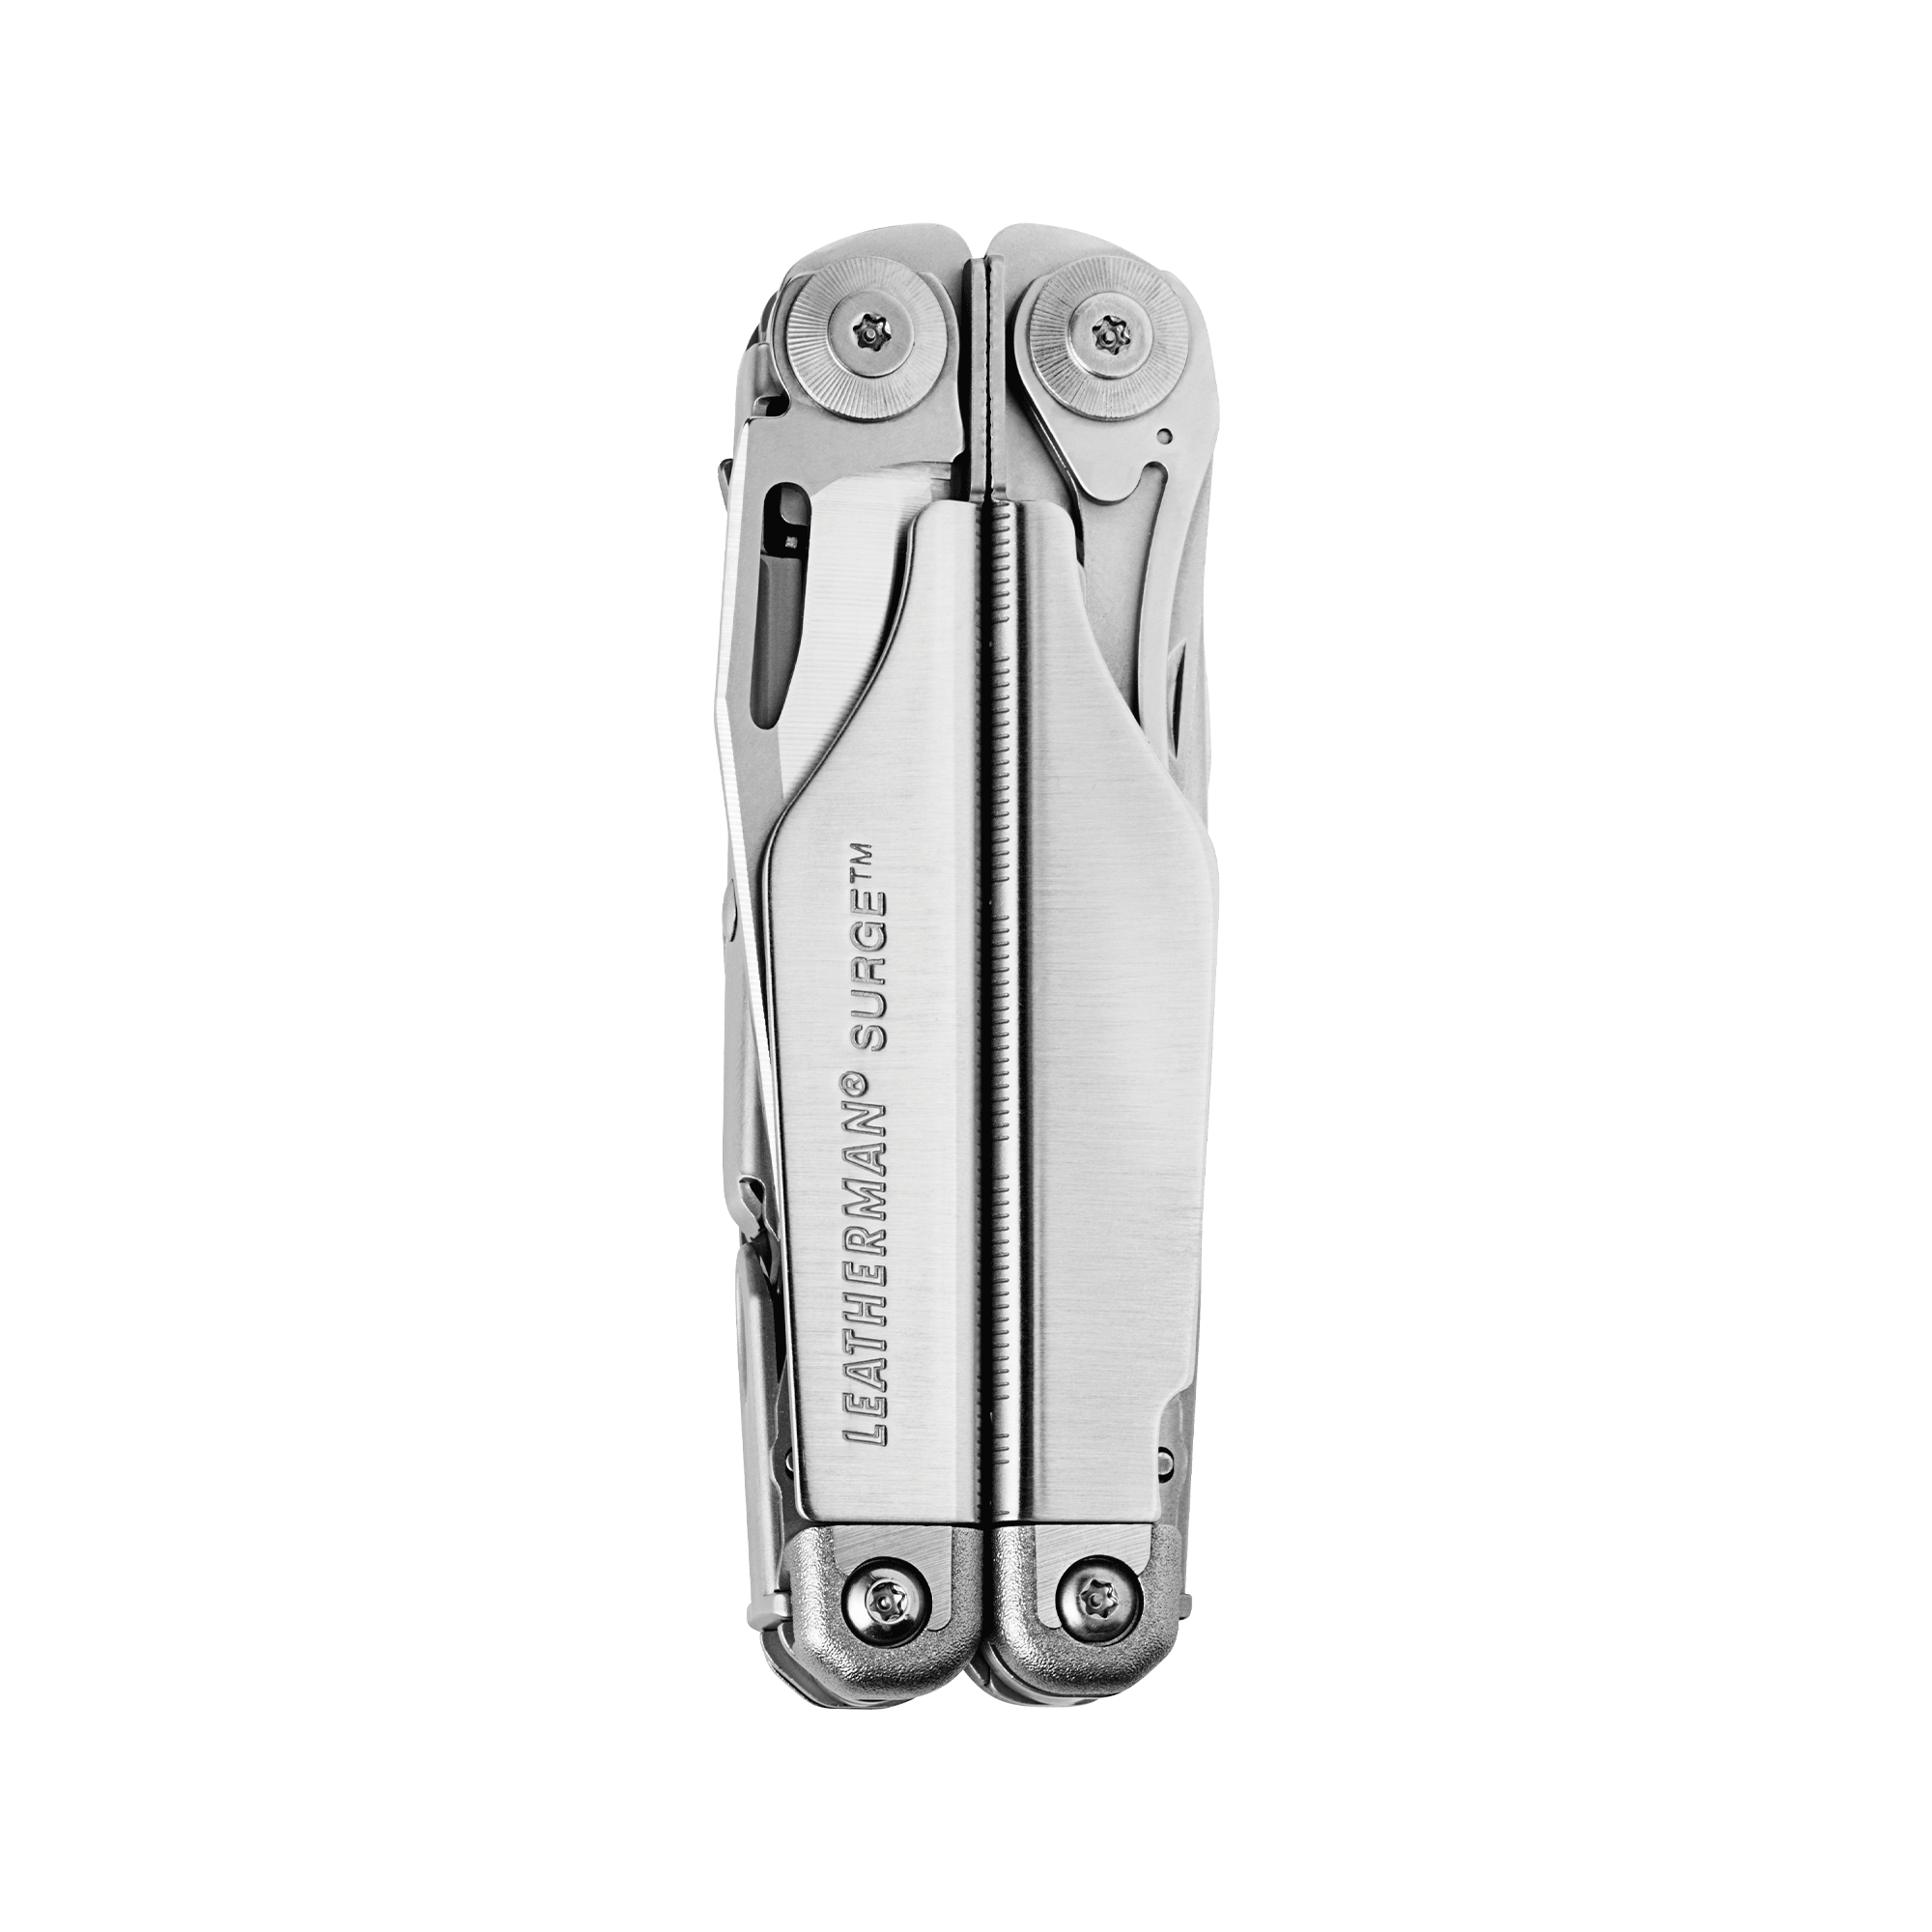 Leatherman Surge multi-tool, stainless steel, heavy duty, 21 tools, closed view